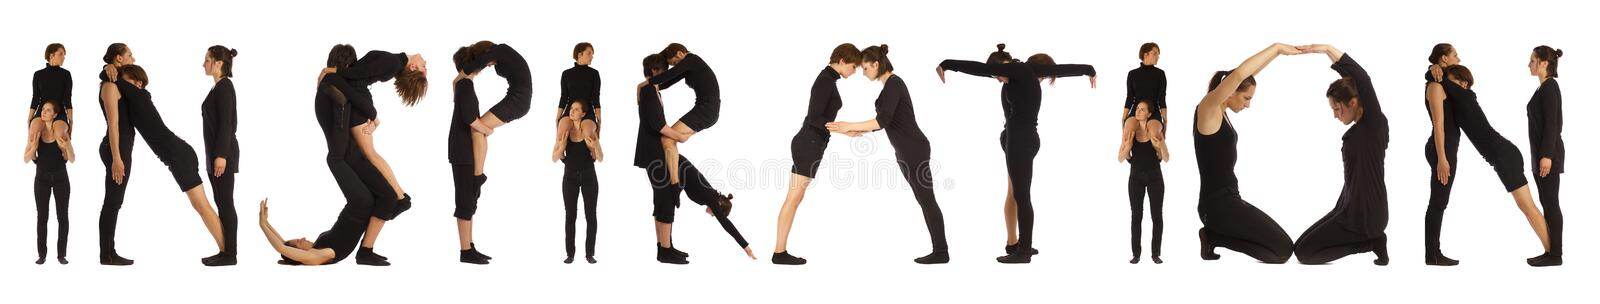 Black dressed people forming INSPIRATION word. Over white background stock photo